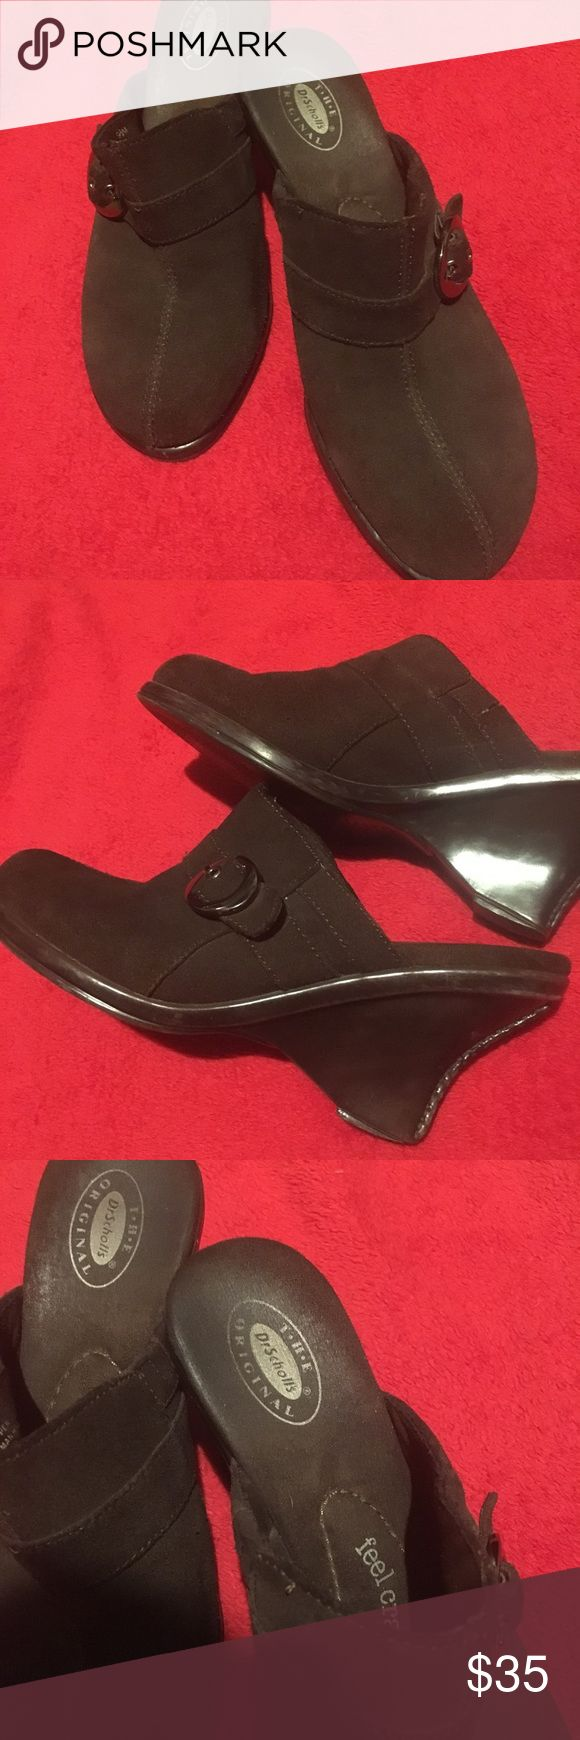 Dr. Scholl's leather heeled mule clogs. Leather wedge mule clogs in chocolate brown by Dr. Scholl's. Awesome condition, super comfortable padding inside. Awesome for the office or business day attire. Great condition. Dr. Scholl's Shoes Mules & Clogs